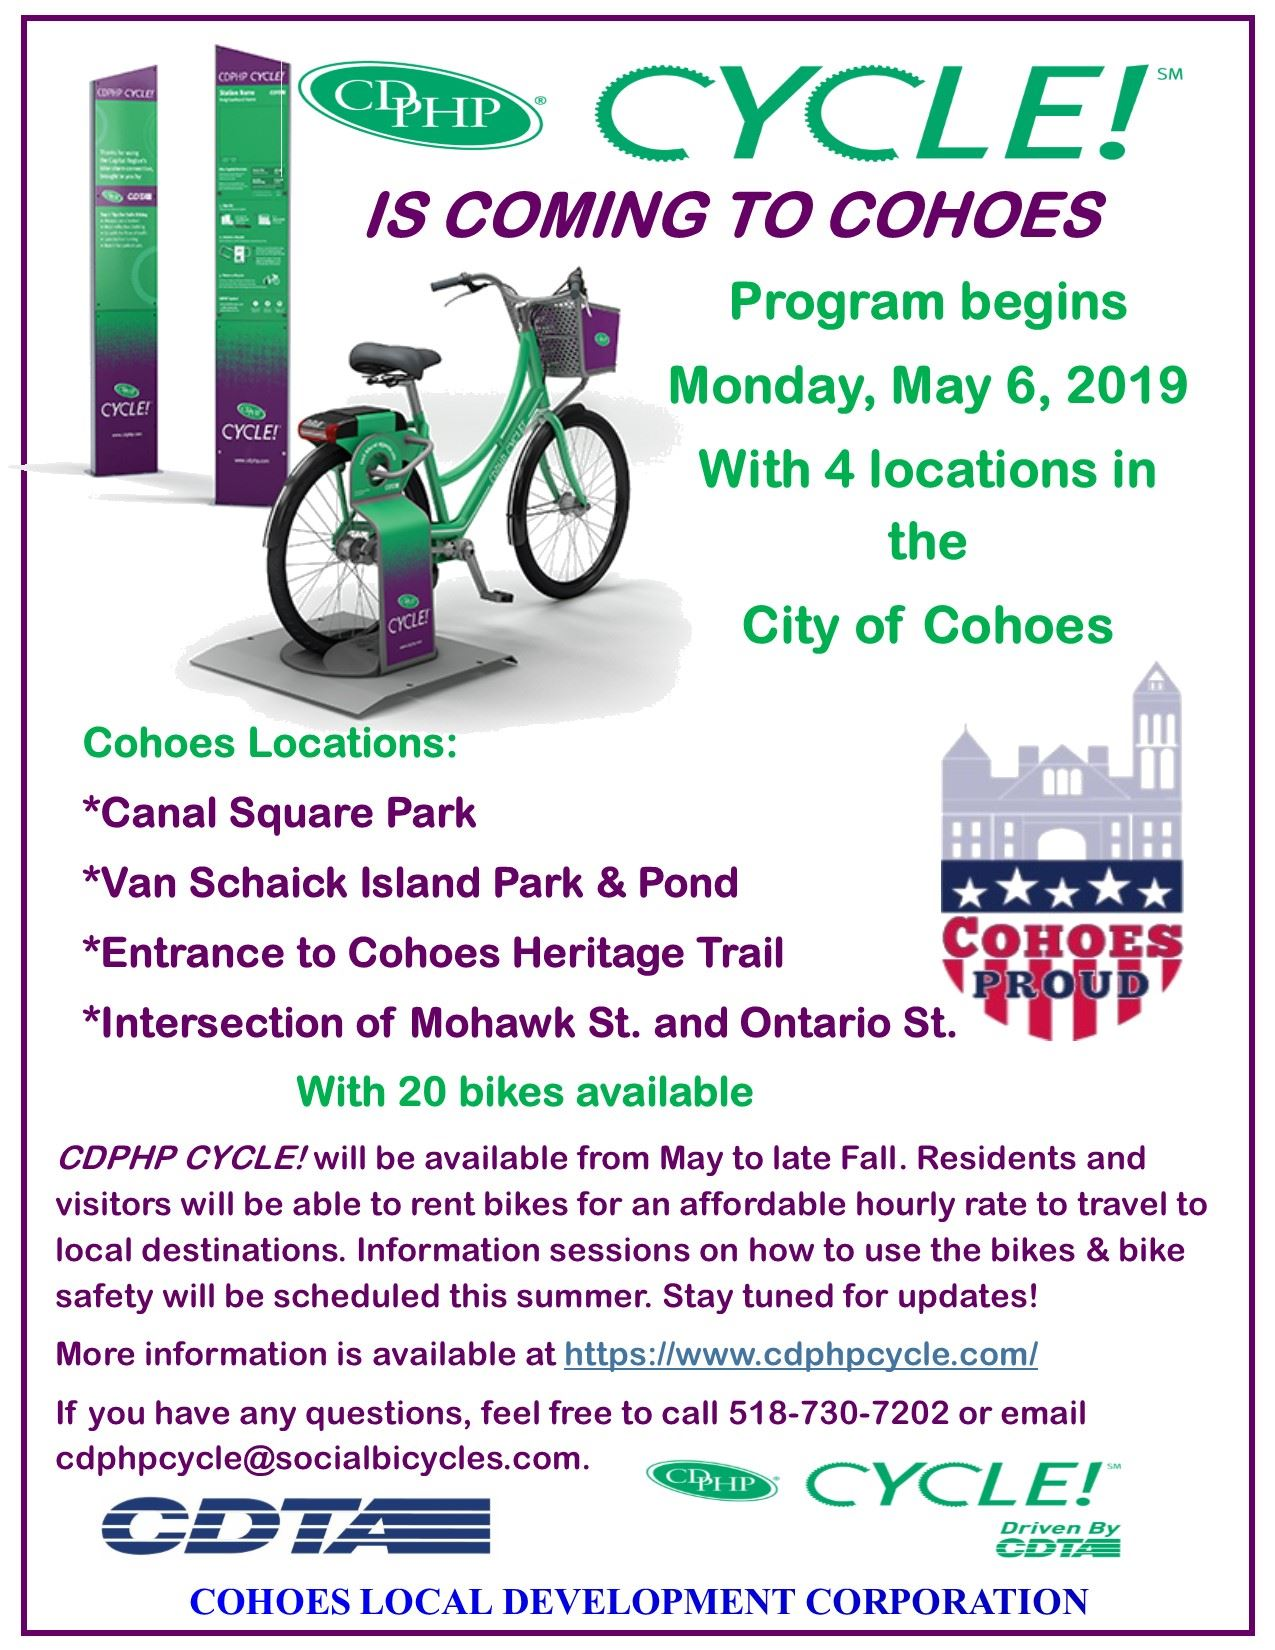 CDPHP Cycle flyer